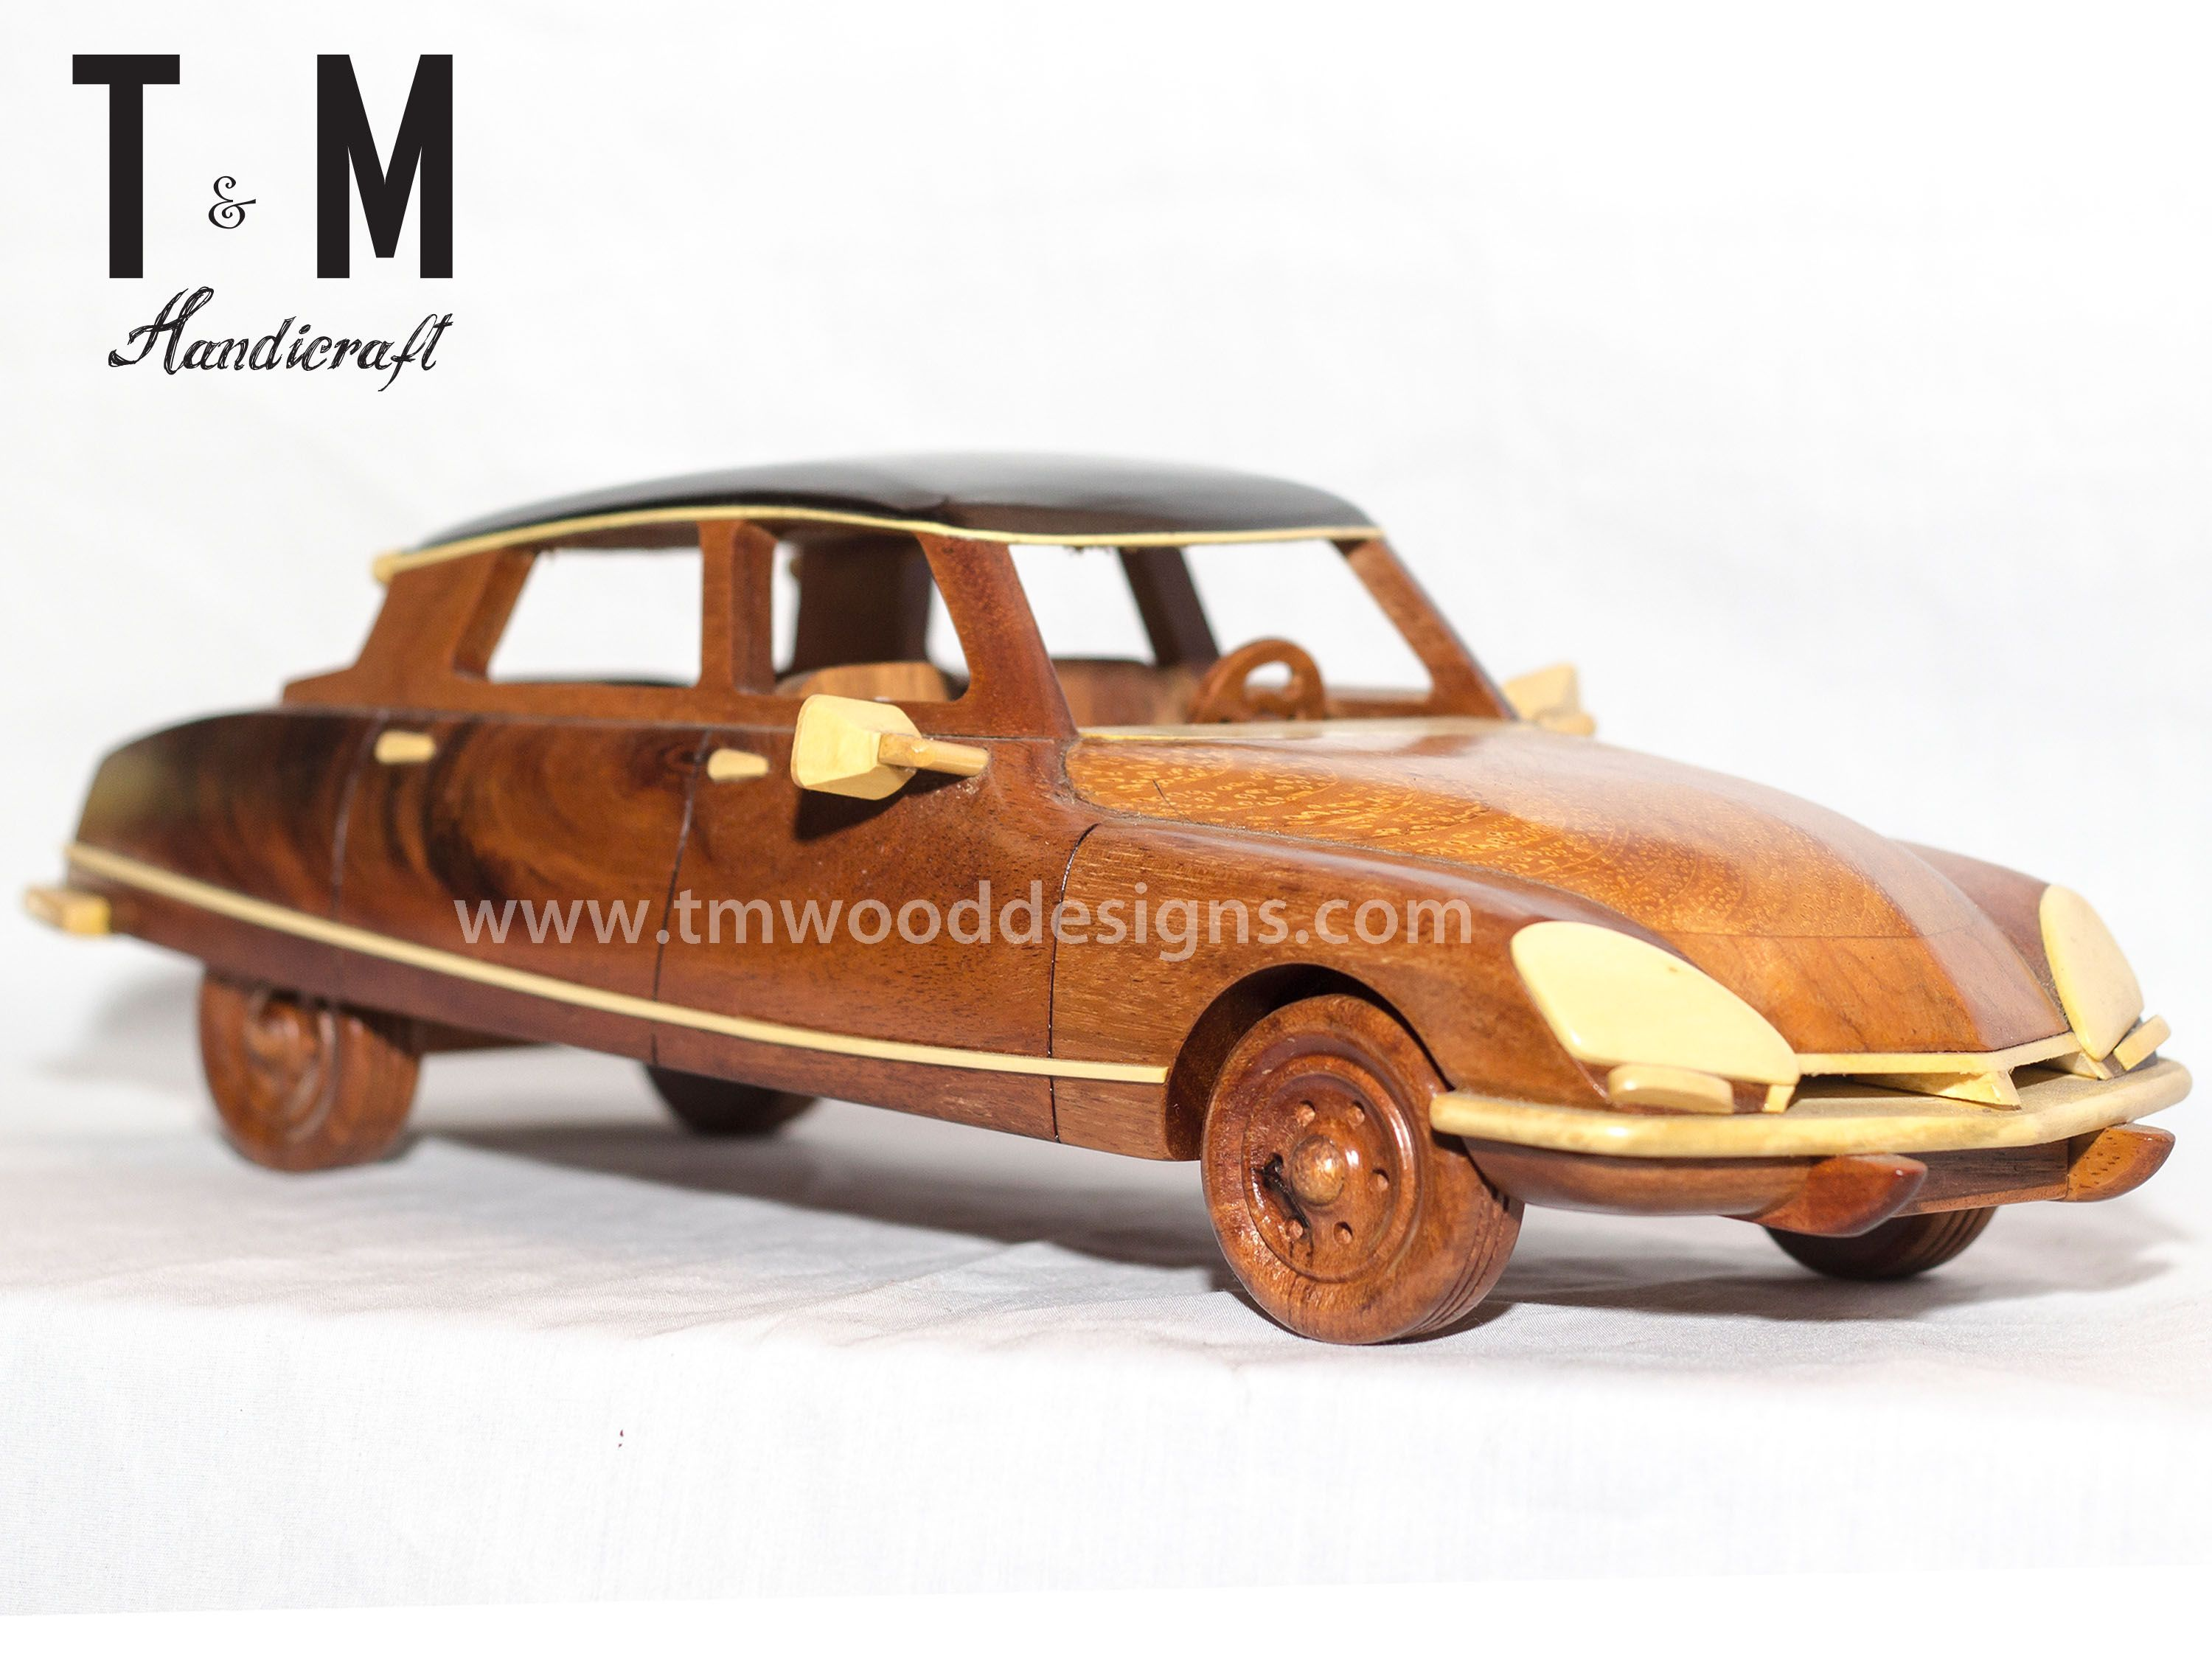 ds pallas 1968 handcrafted mahogany wood model car wooden art